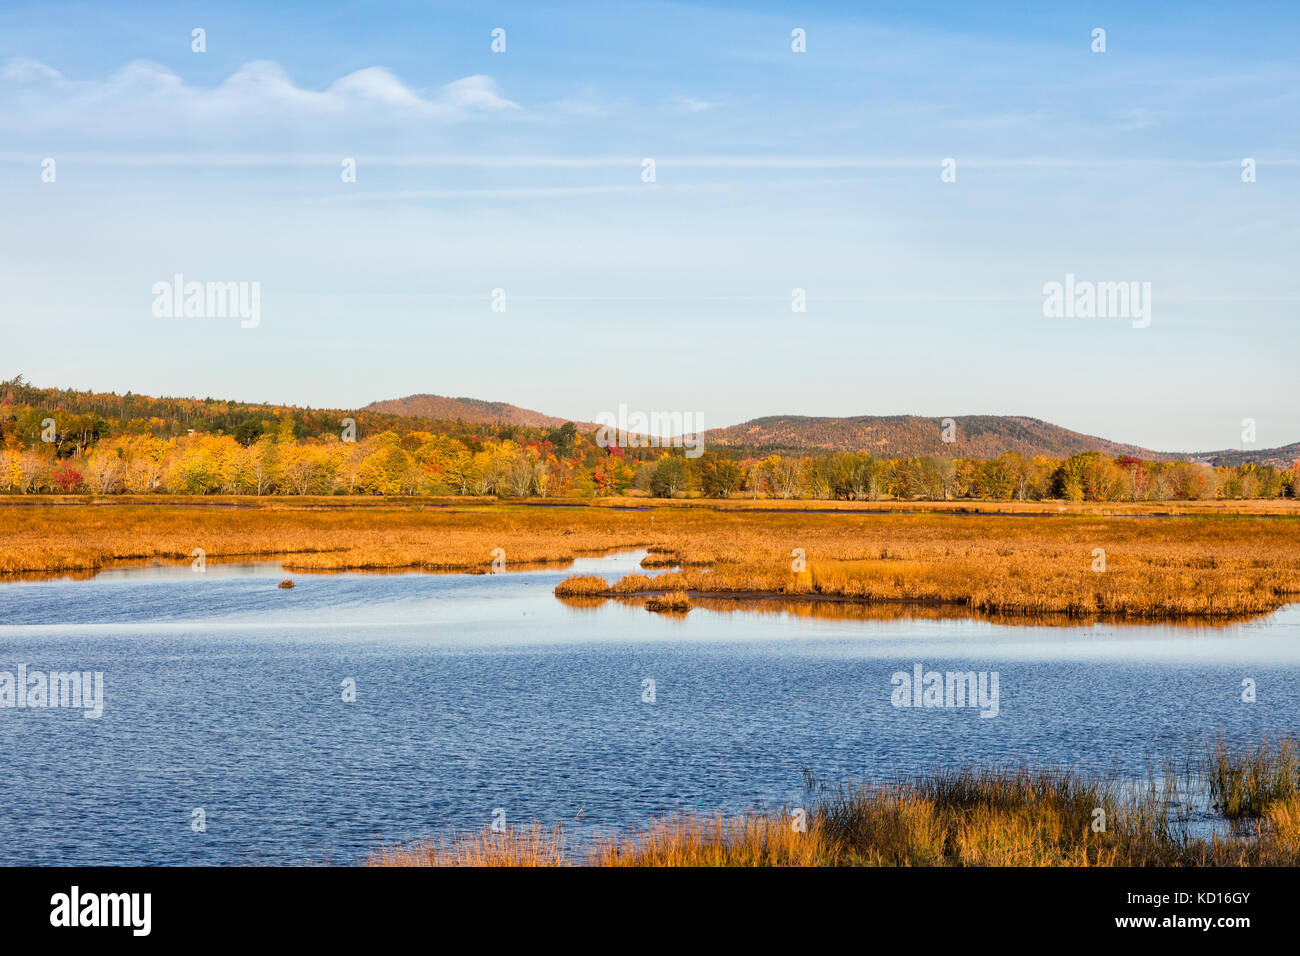 Westfield Stock Photos & Westfield Stock Images - Alamy